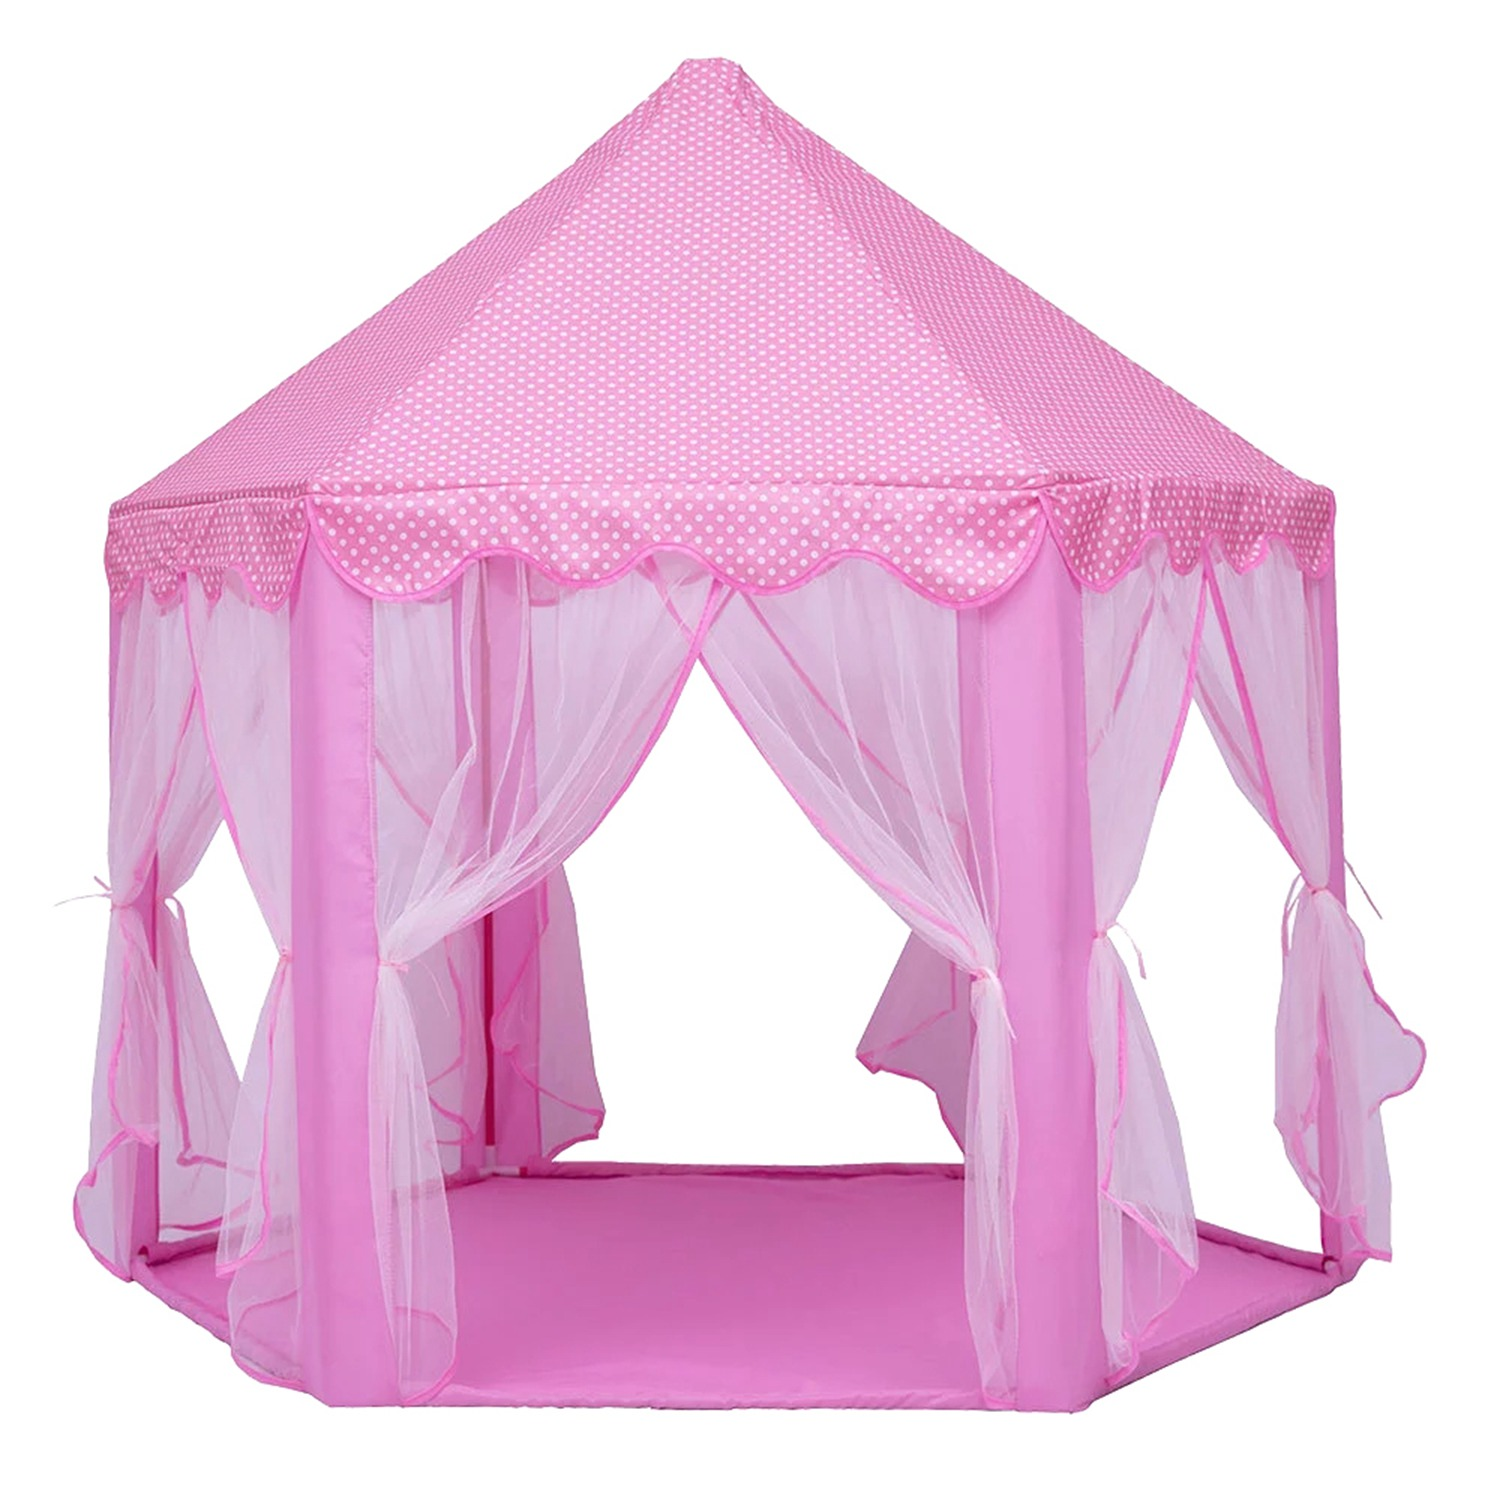 Play Fairy House Indoor And Outdoor Kids Play Tent Hexagon Princess Castle Playhouse For Girls Funny Dolls Mongolian Tent